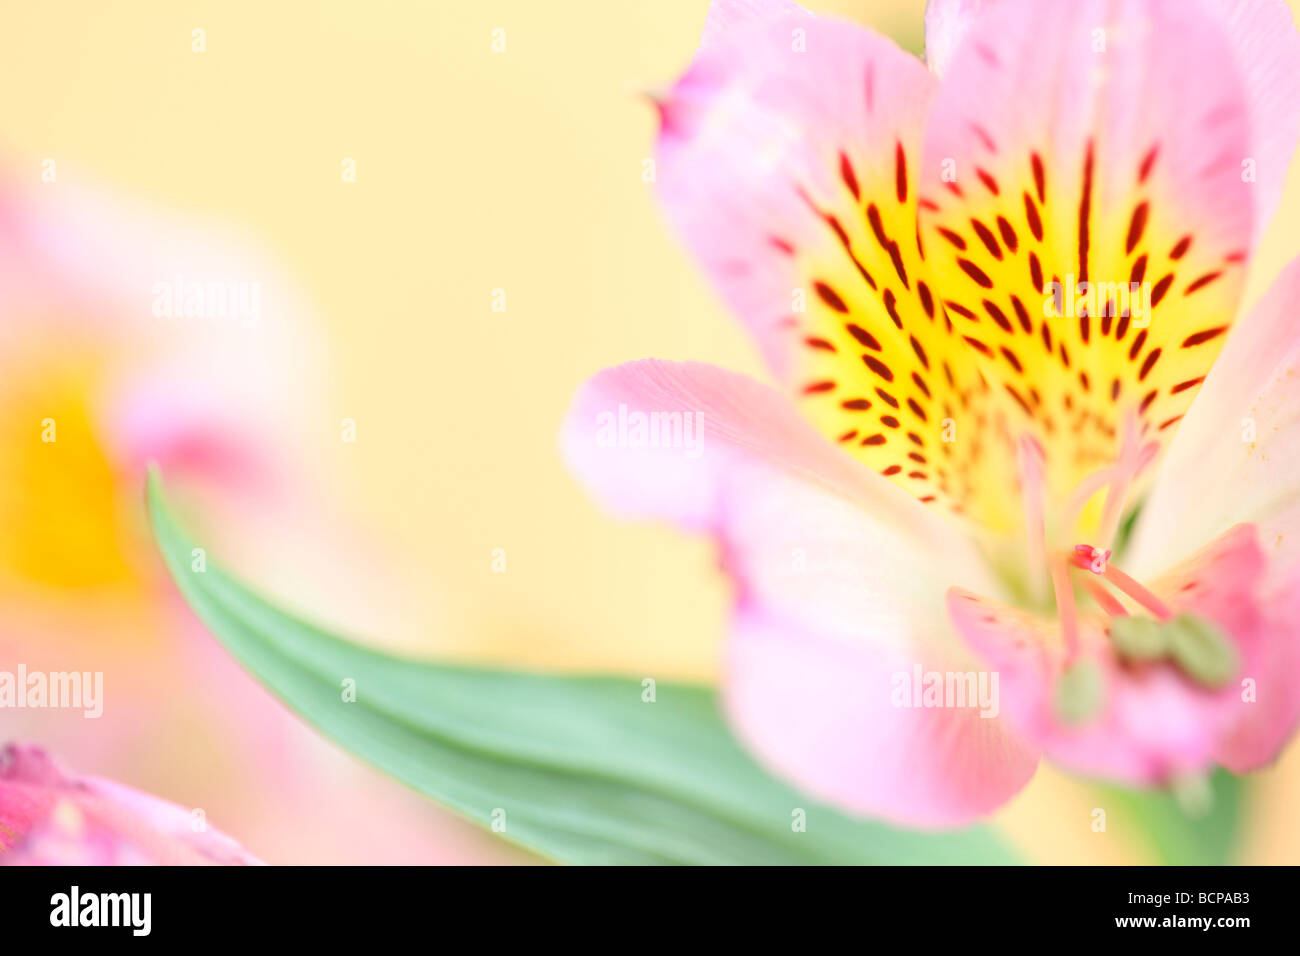 beautifully delicate image of the loved alstroemeria fine art photography Jane Ann Butler Photography JABP364 - Stock Image